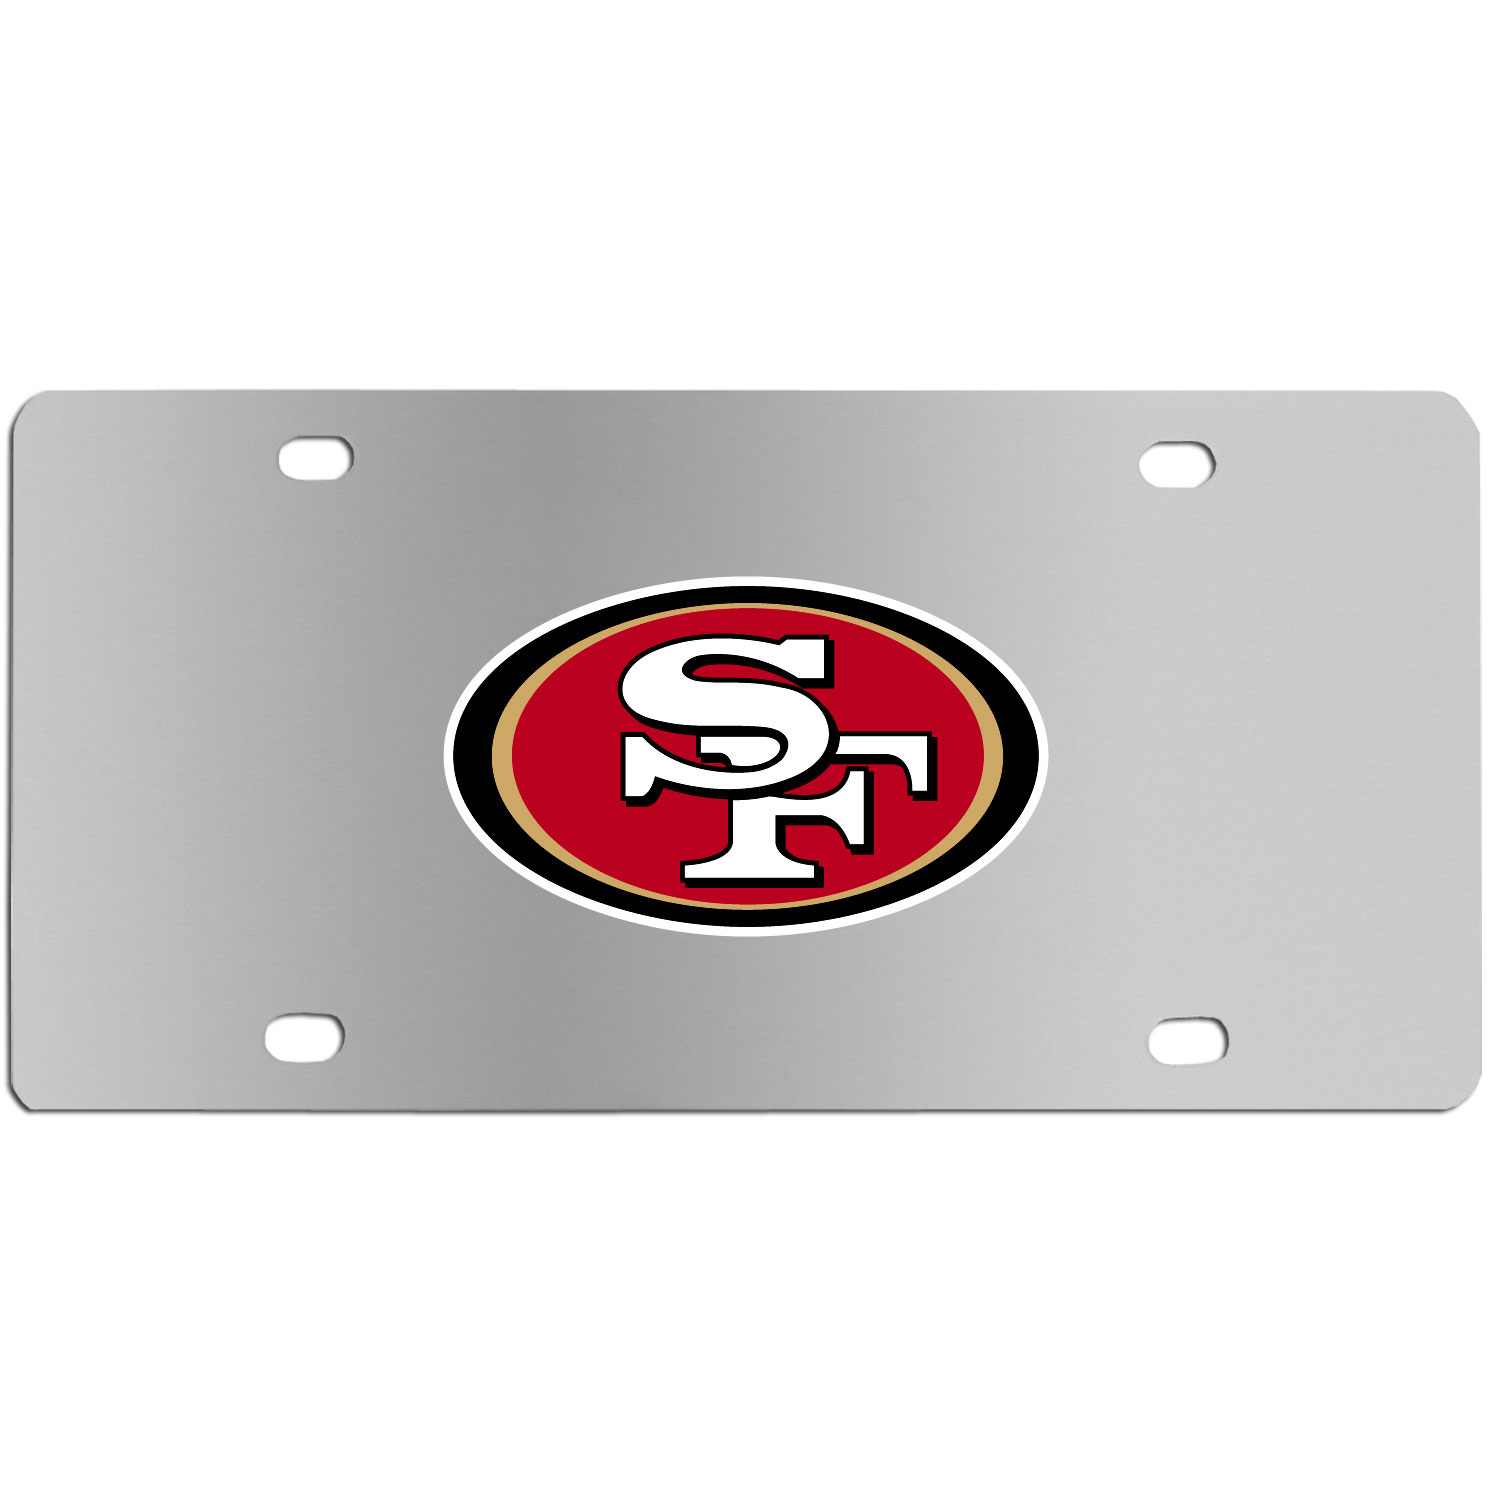 San Francisco 49ers Steel License Plate Wall Plaque - This high-quality stainless steel license plate features a detailed team logo on a the polished surface. The attractive plate is perfect for wall mounting in your home or office to become the perfect die-hard San Francisco 49ers fan decor.